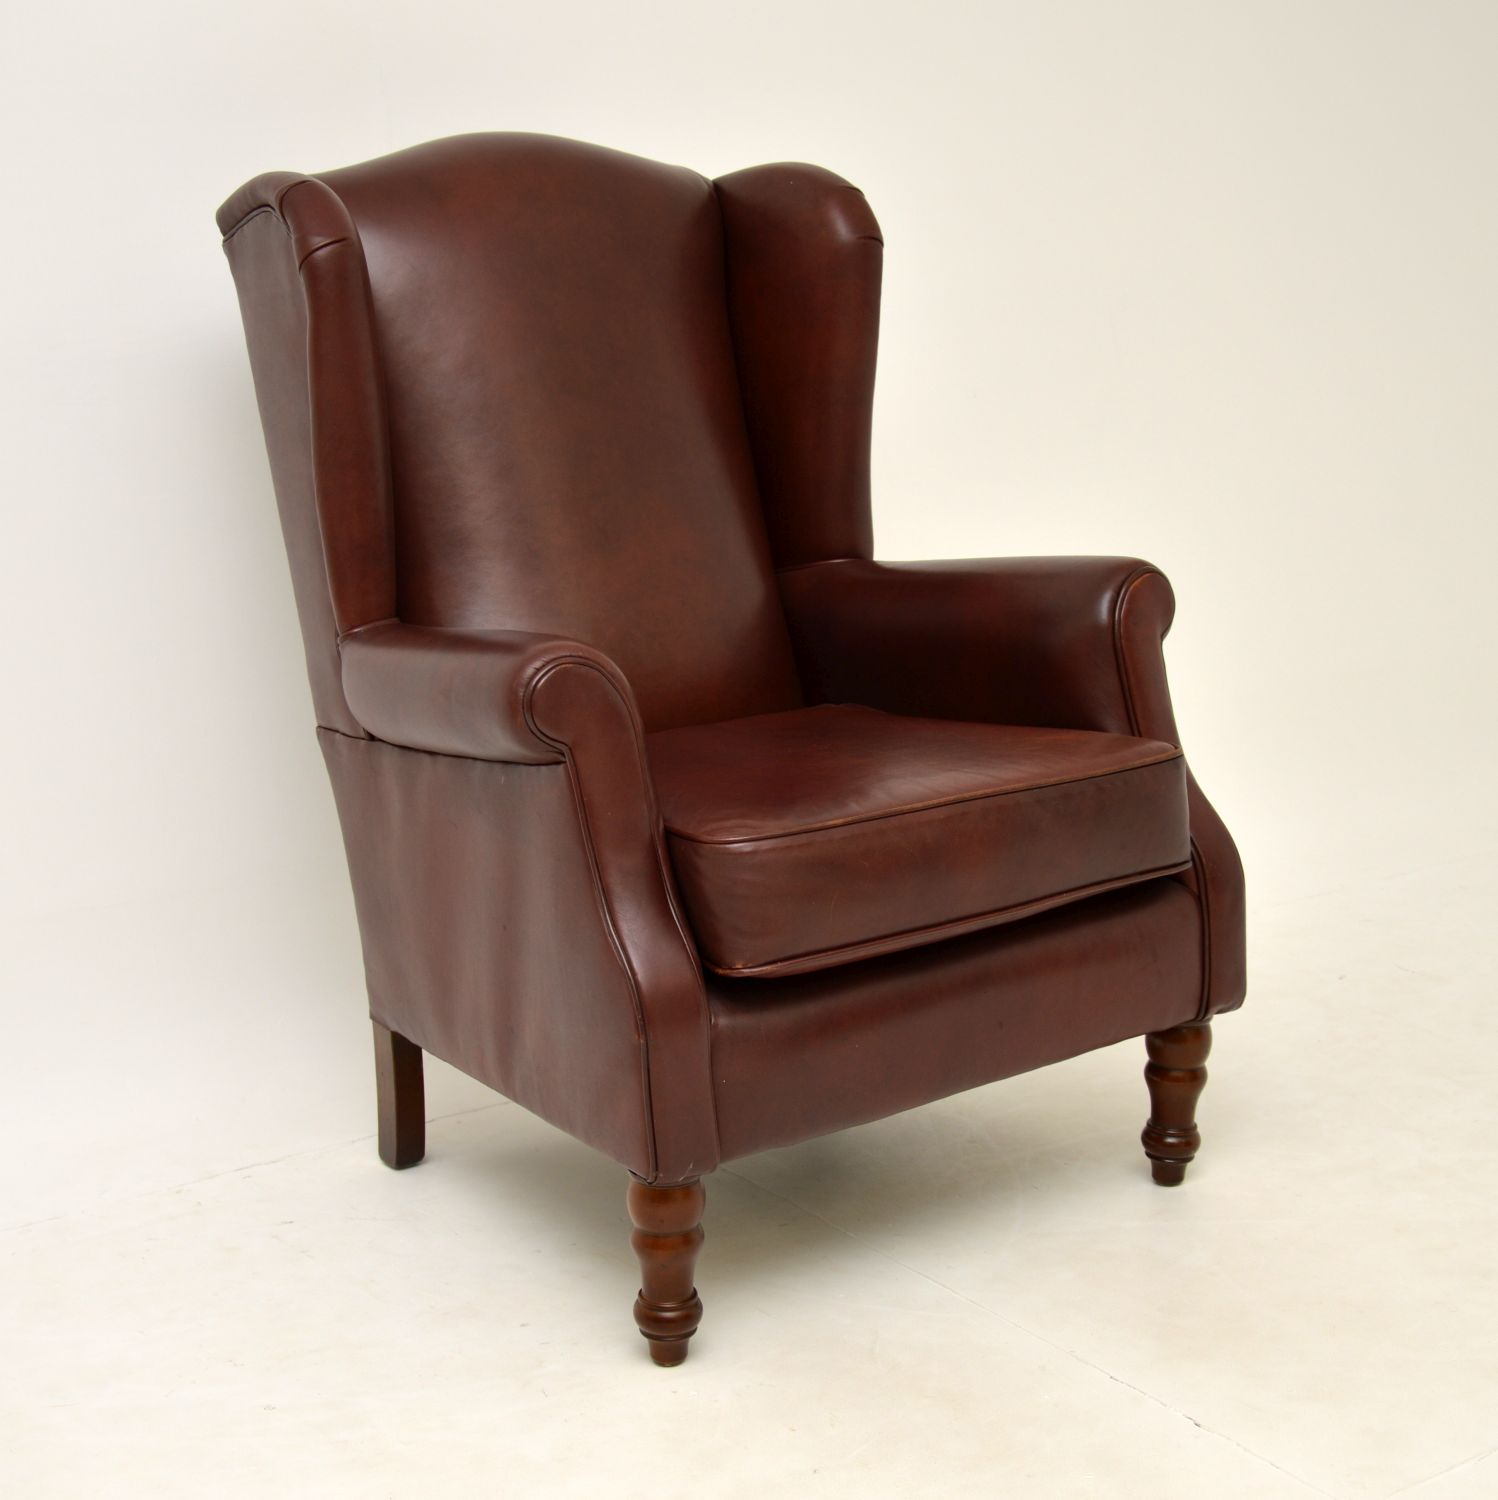 antique georgian style leather wing back armchair